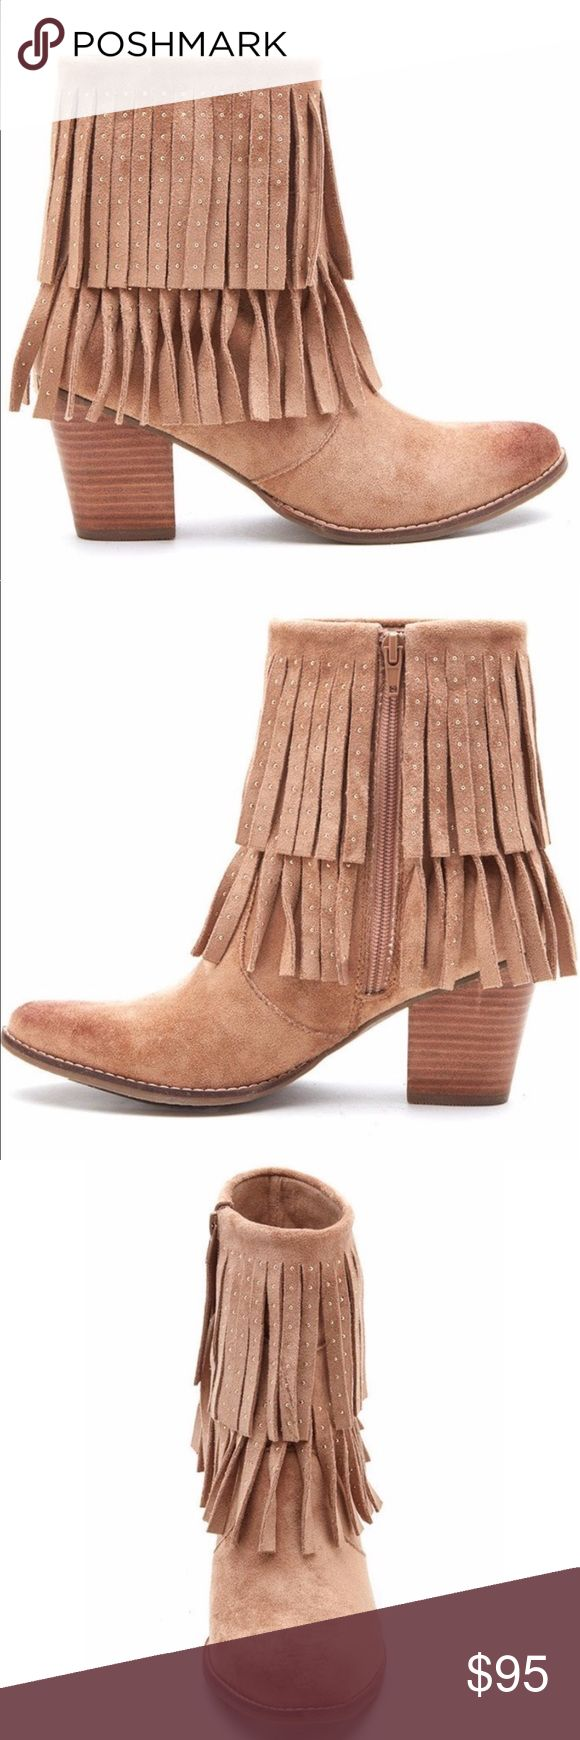 Coconuts by Matisse Boots Up for sale I have a pair of brand new in original box of Coconuts by Matisse boots Size: 7.5 Color: Beige Matisse Shoes Heeled Boots